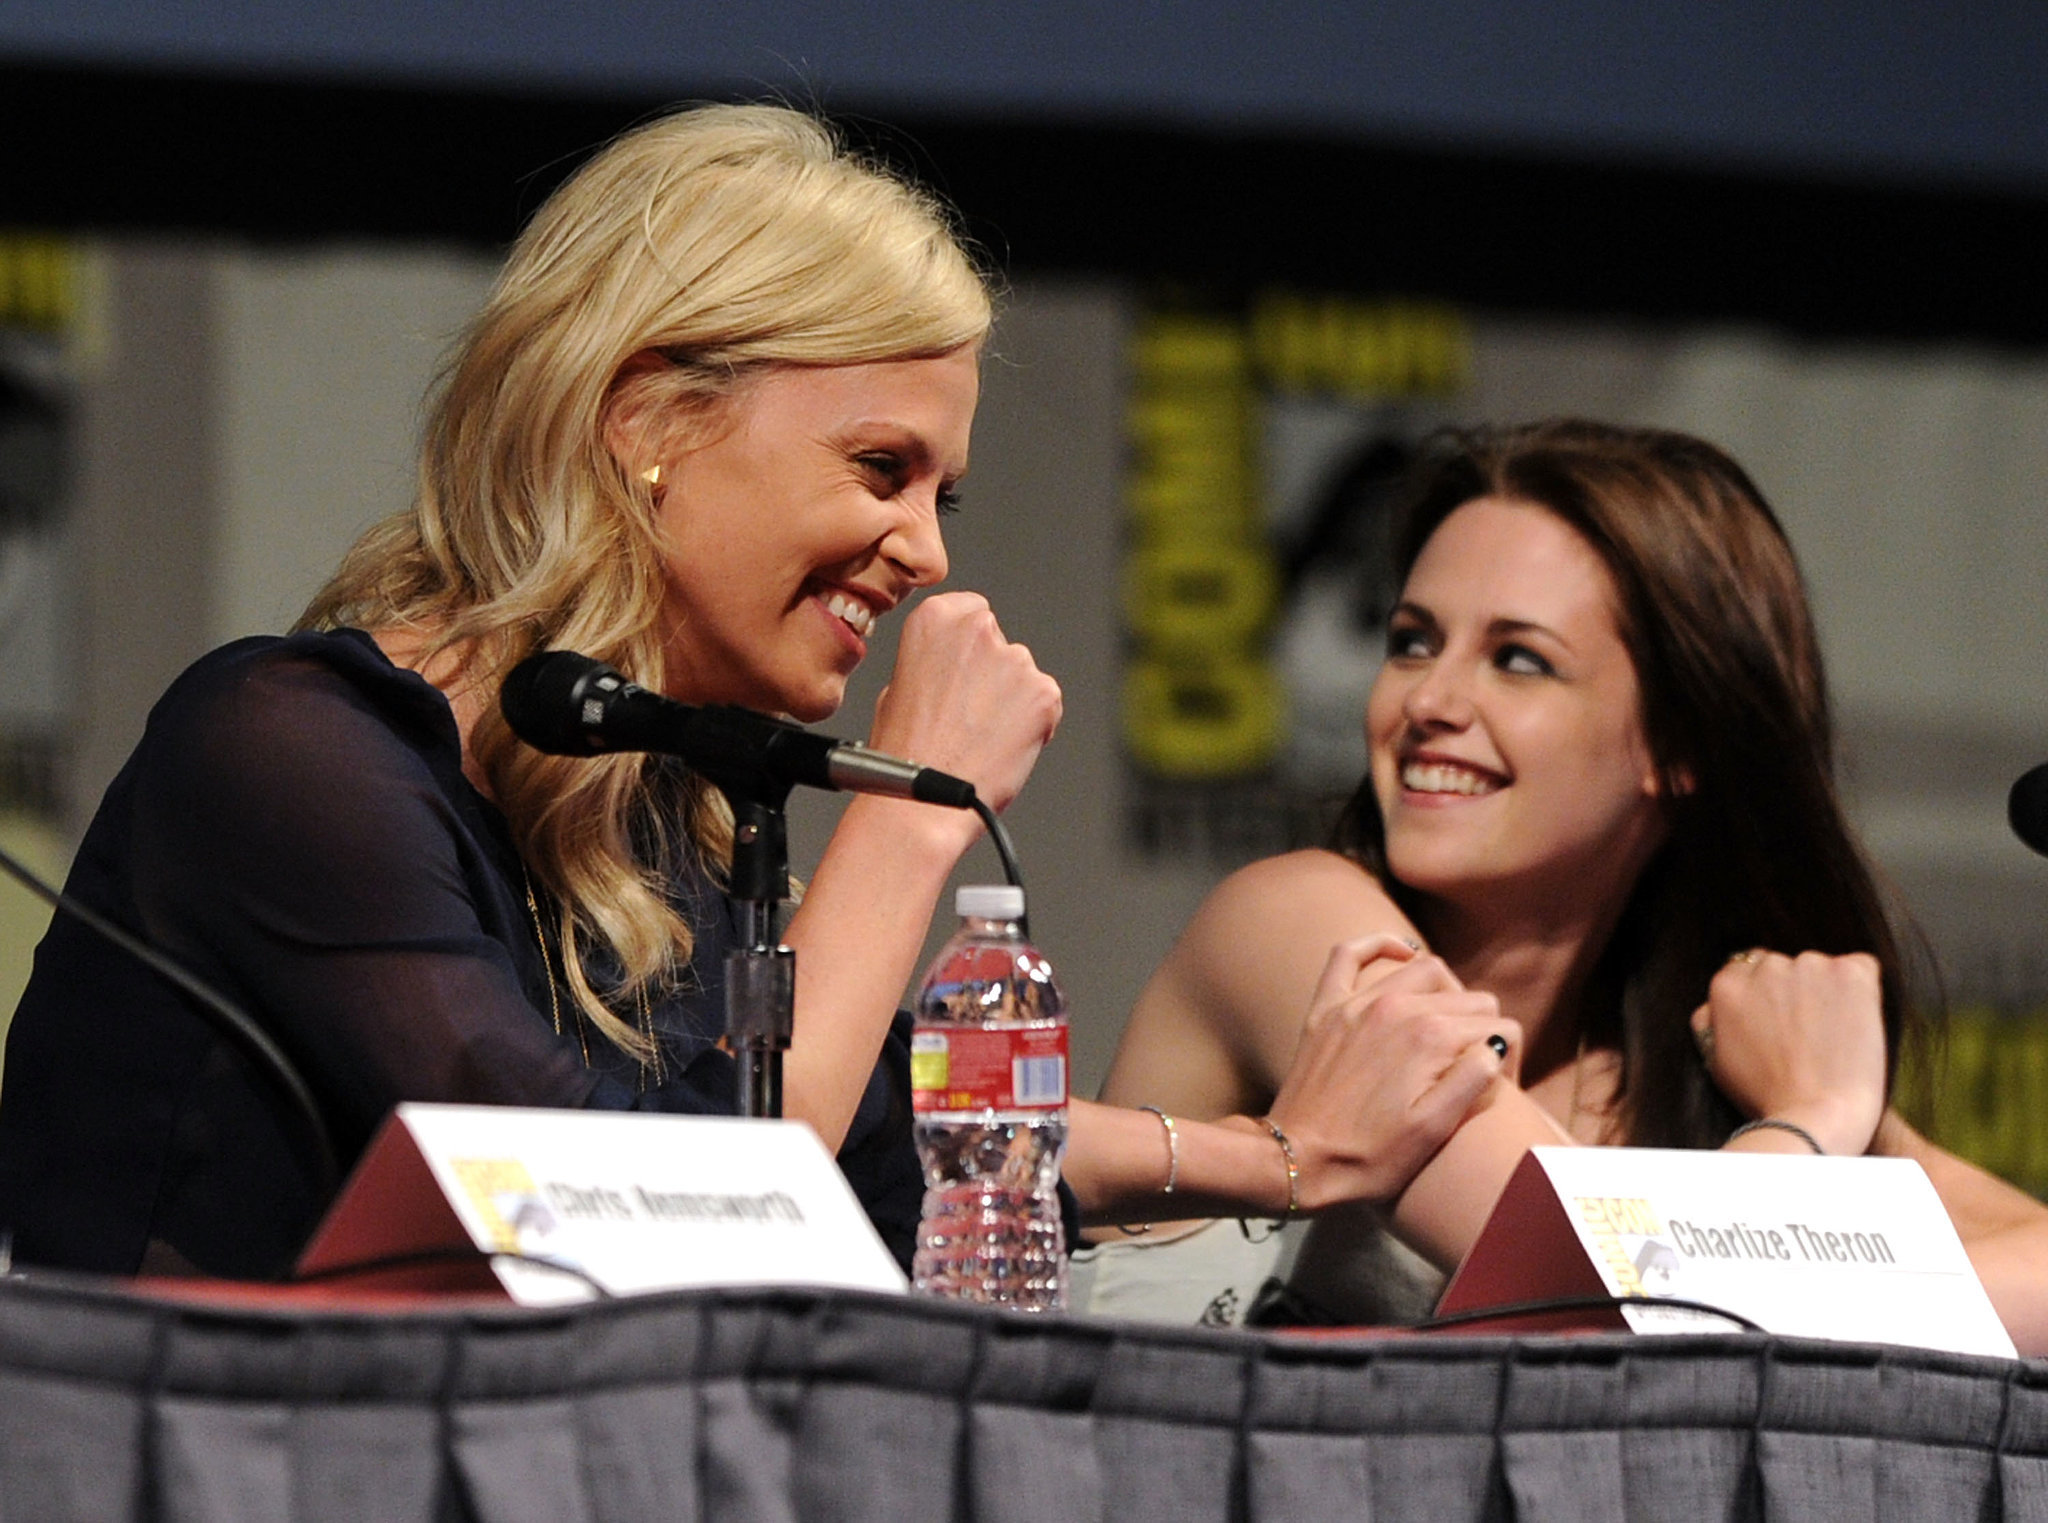 Charlize Theron and Kristen Stewart shared a laugh during the Snow White and the Huntsman panel discussion in 2011.